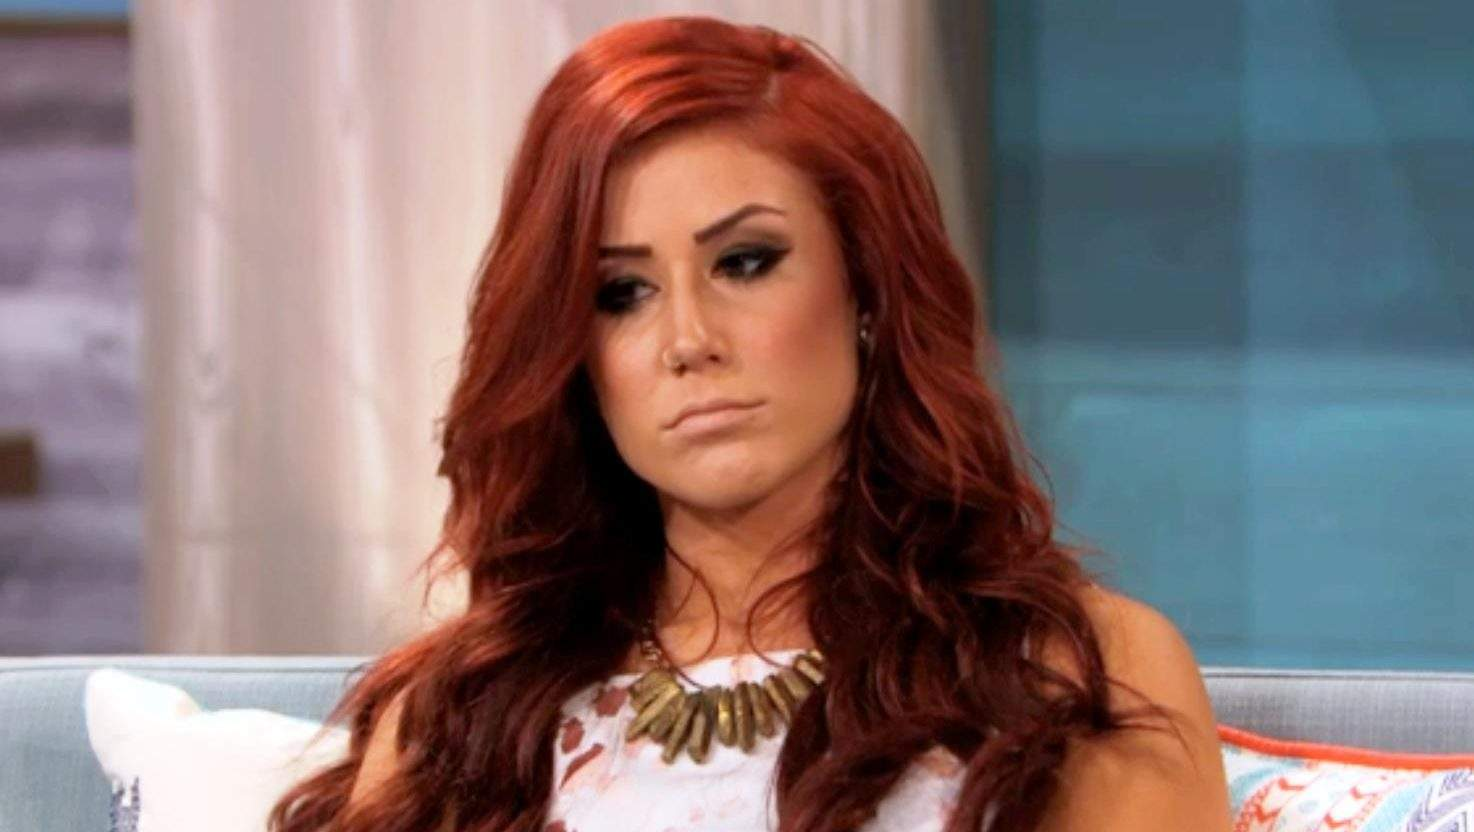 Chelsea Houska Opens Up About Her Teen Mom Exit In Heartfelt Statement